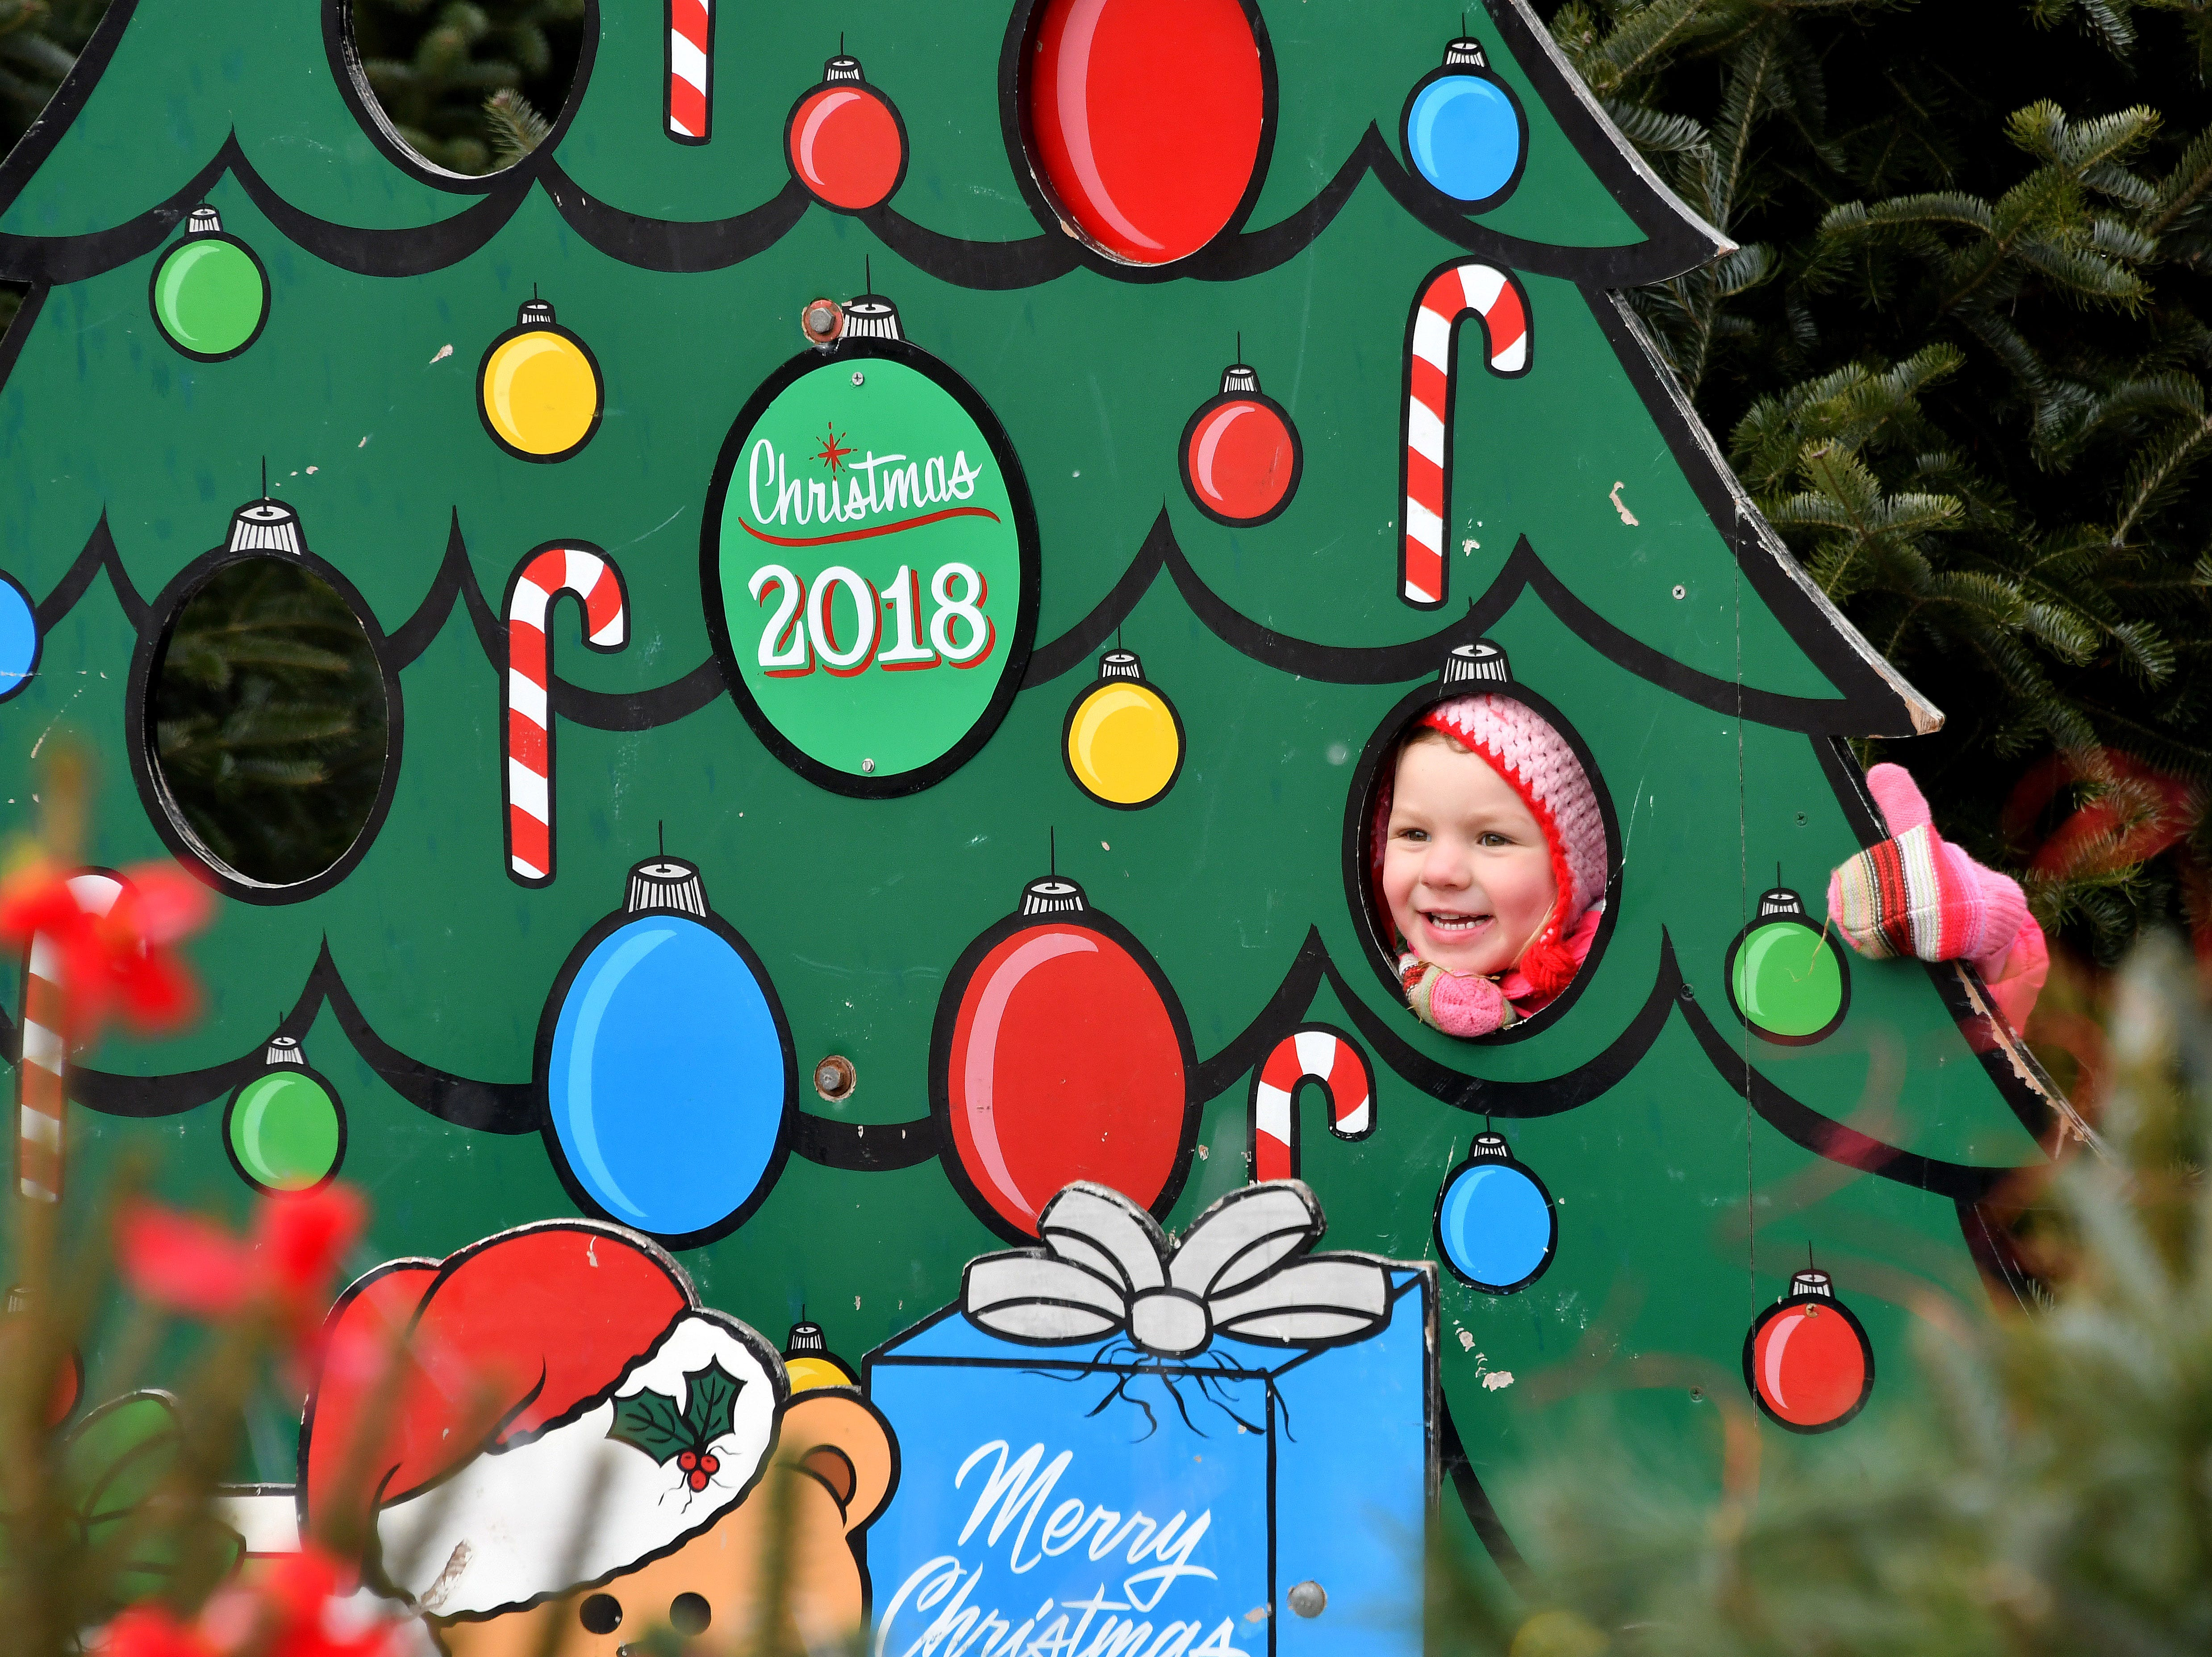 The Kluck's Christmas Tree Village offers concessions, a warming area, plenty of photo opportunities and a play area for kids.